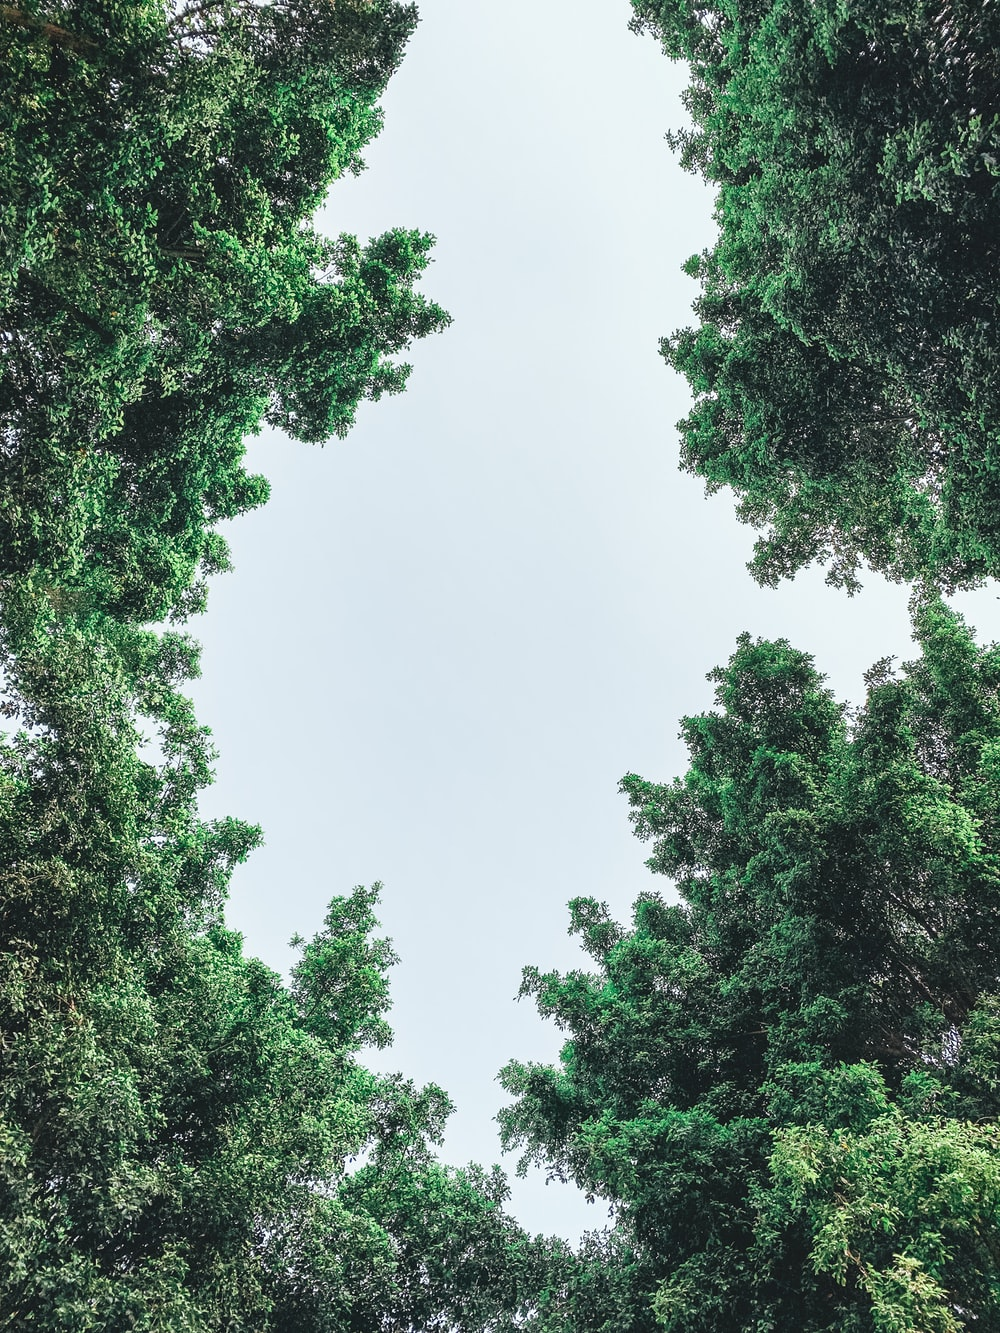 worm view photo of green trees